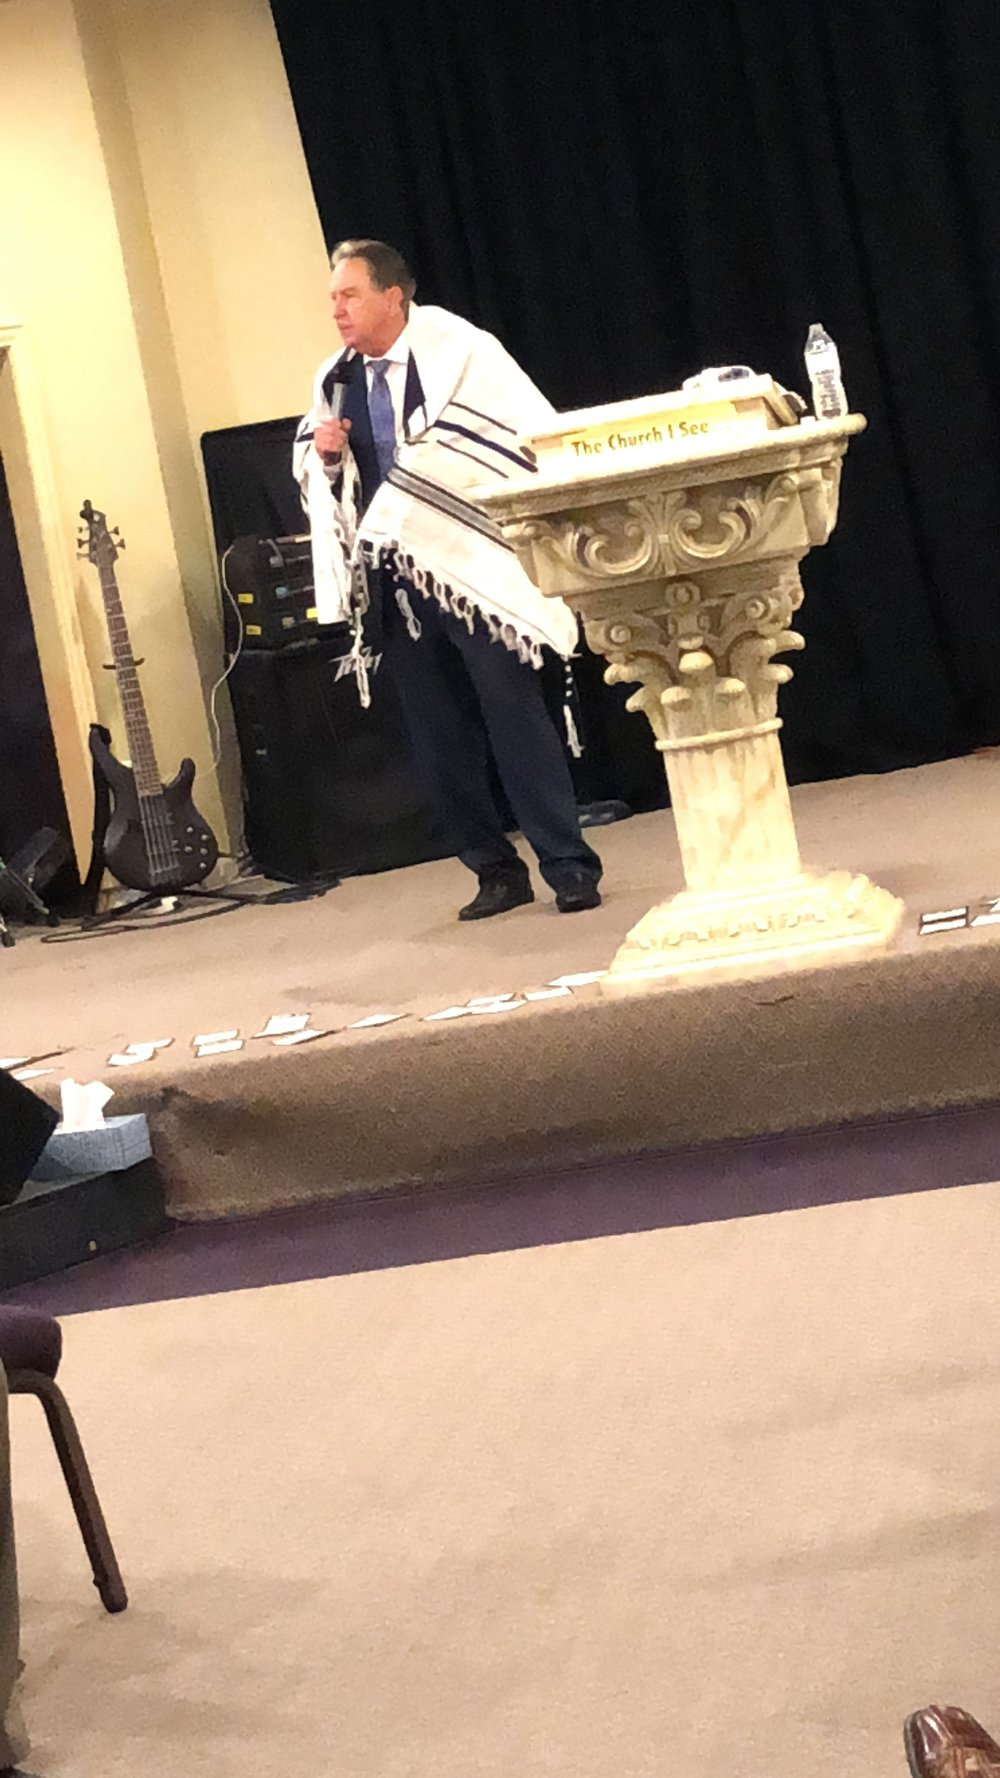 Corinth, Texas; Winslow preaching with prayer shawl.